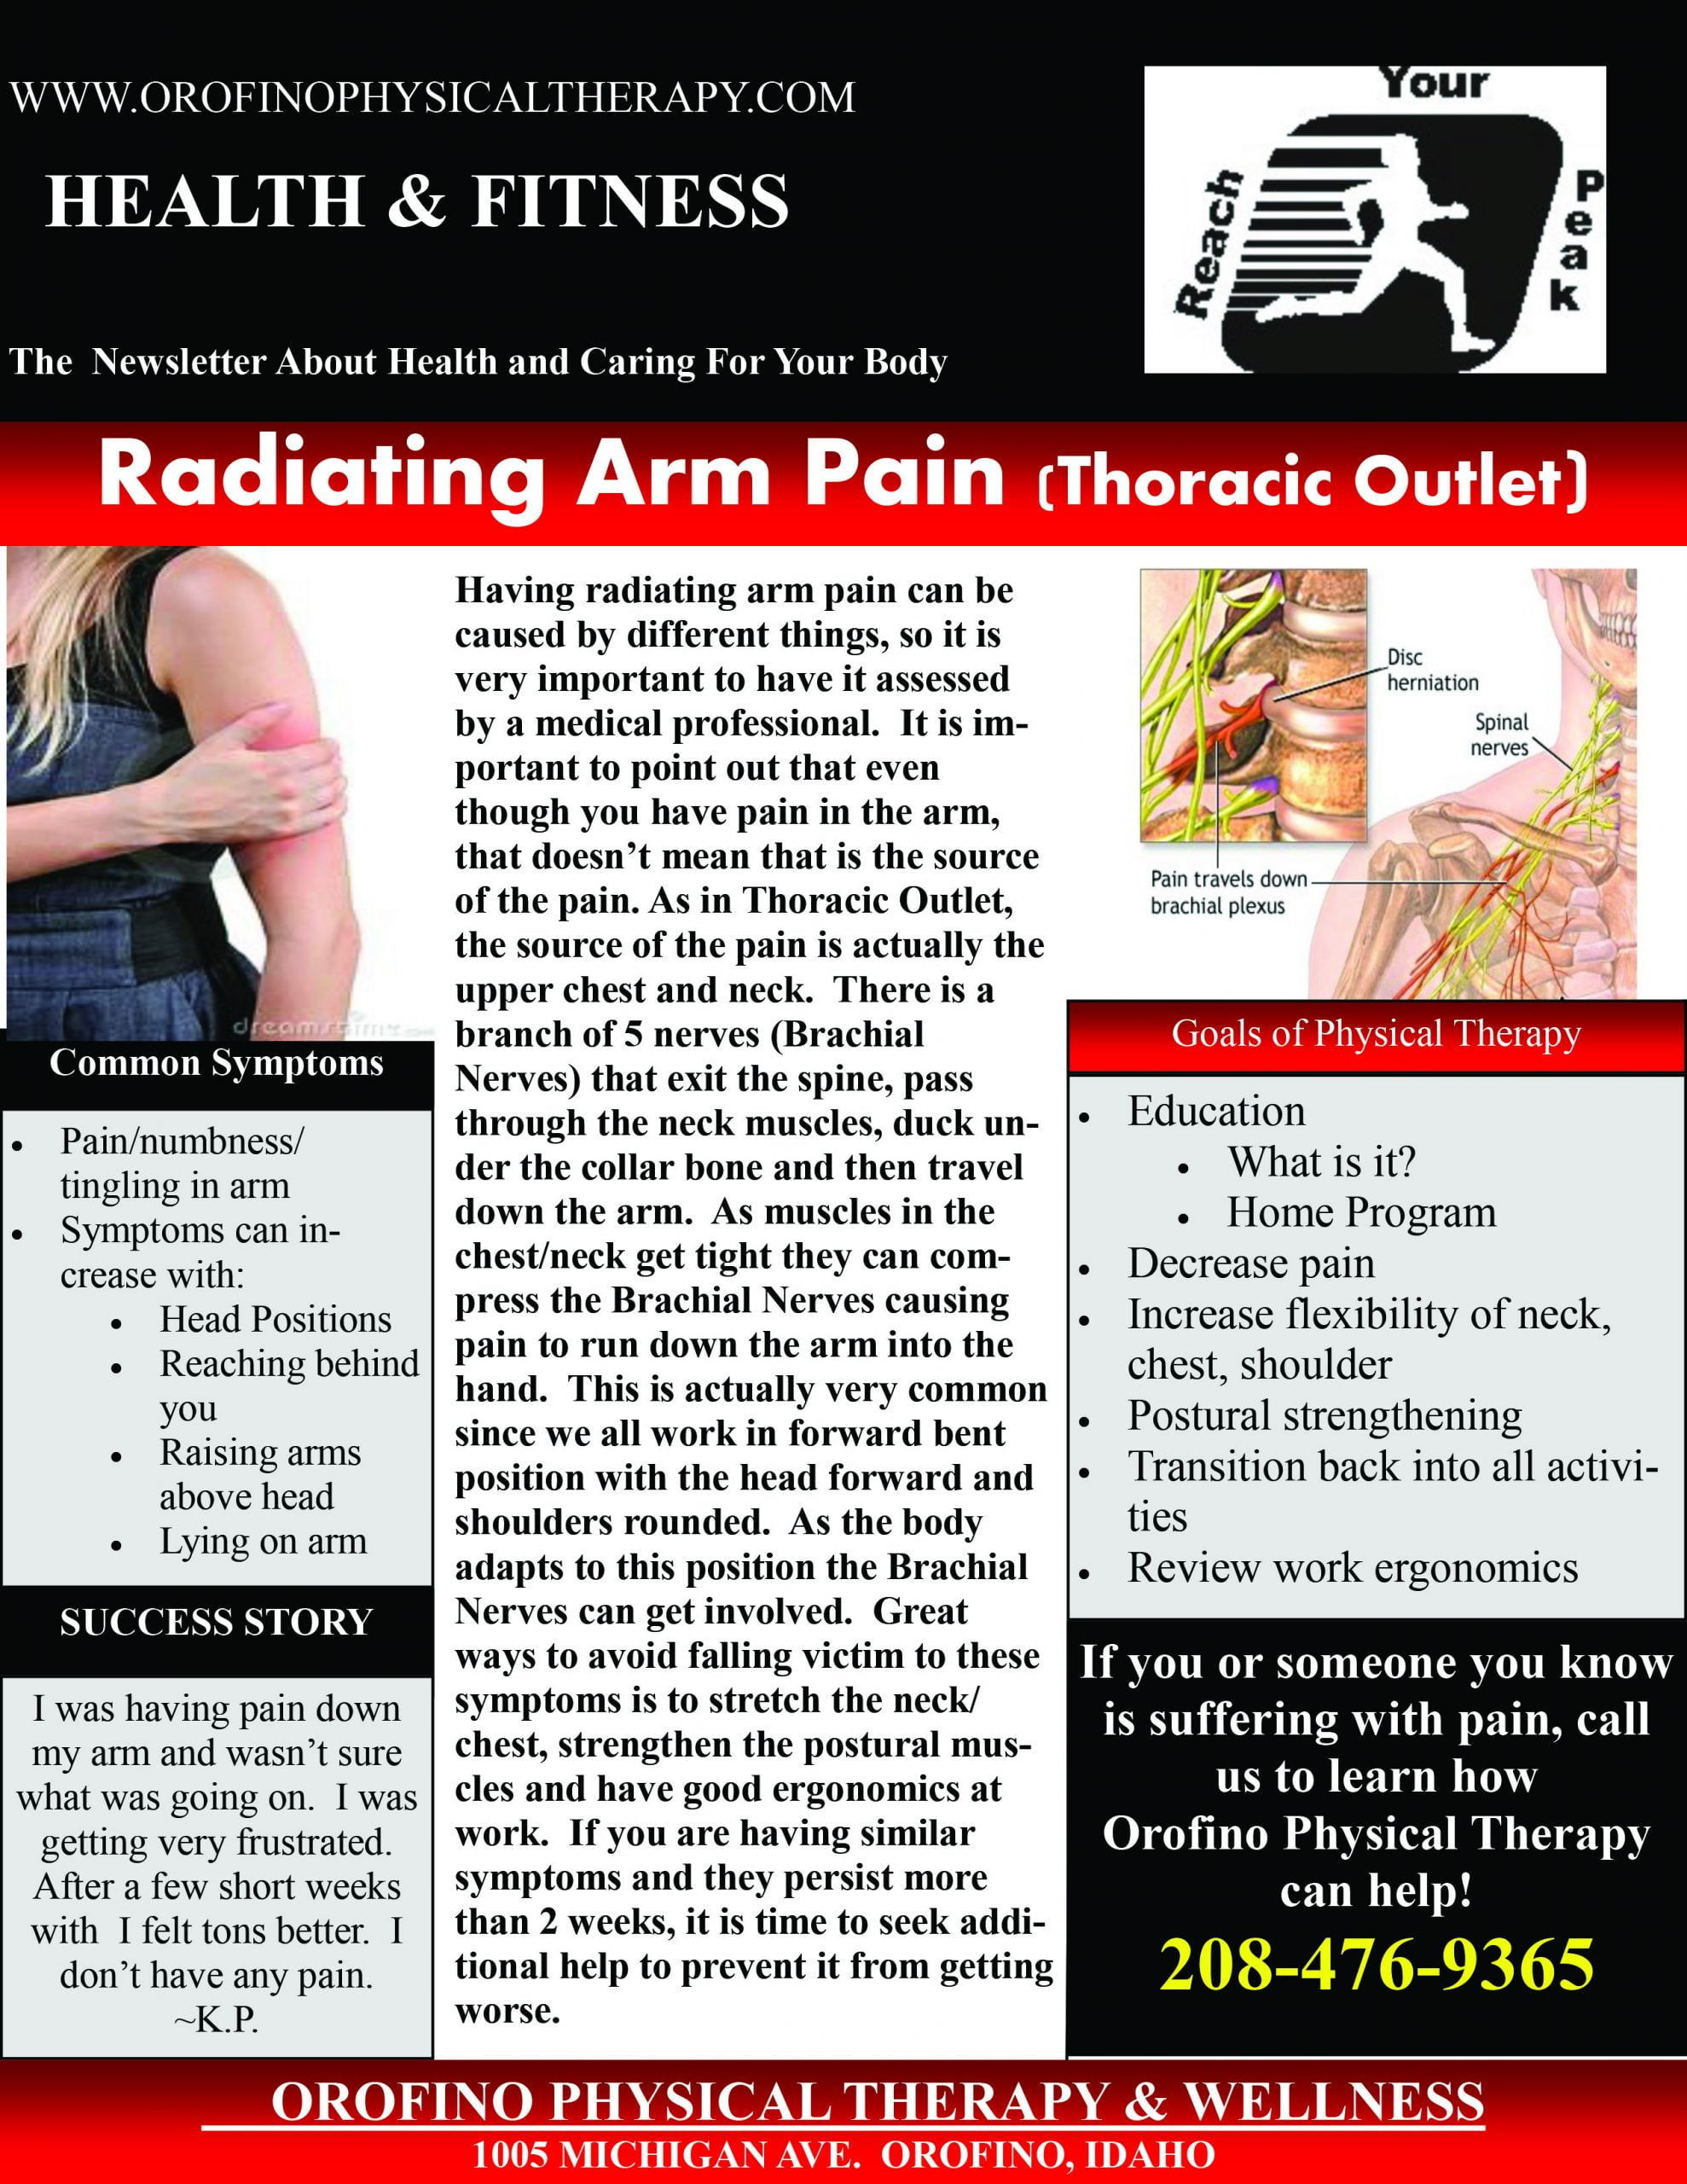 Thoracic Outlet Radiating Arm Pain